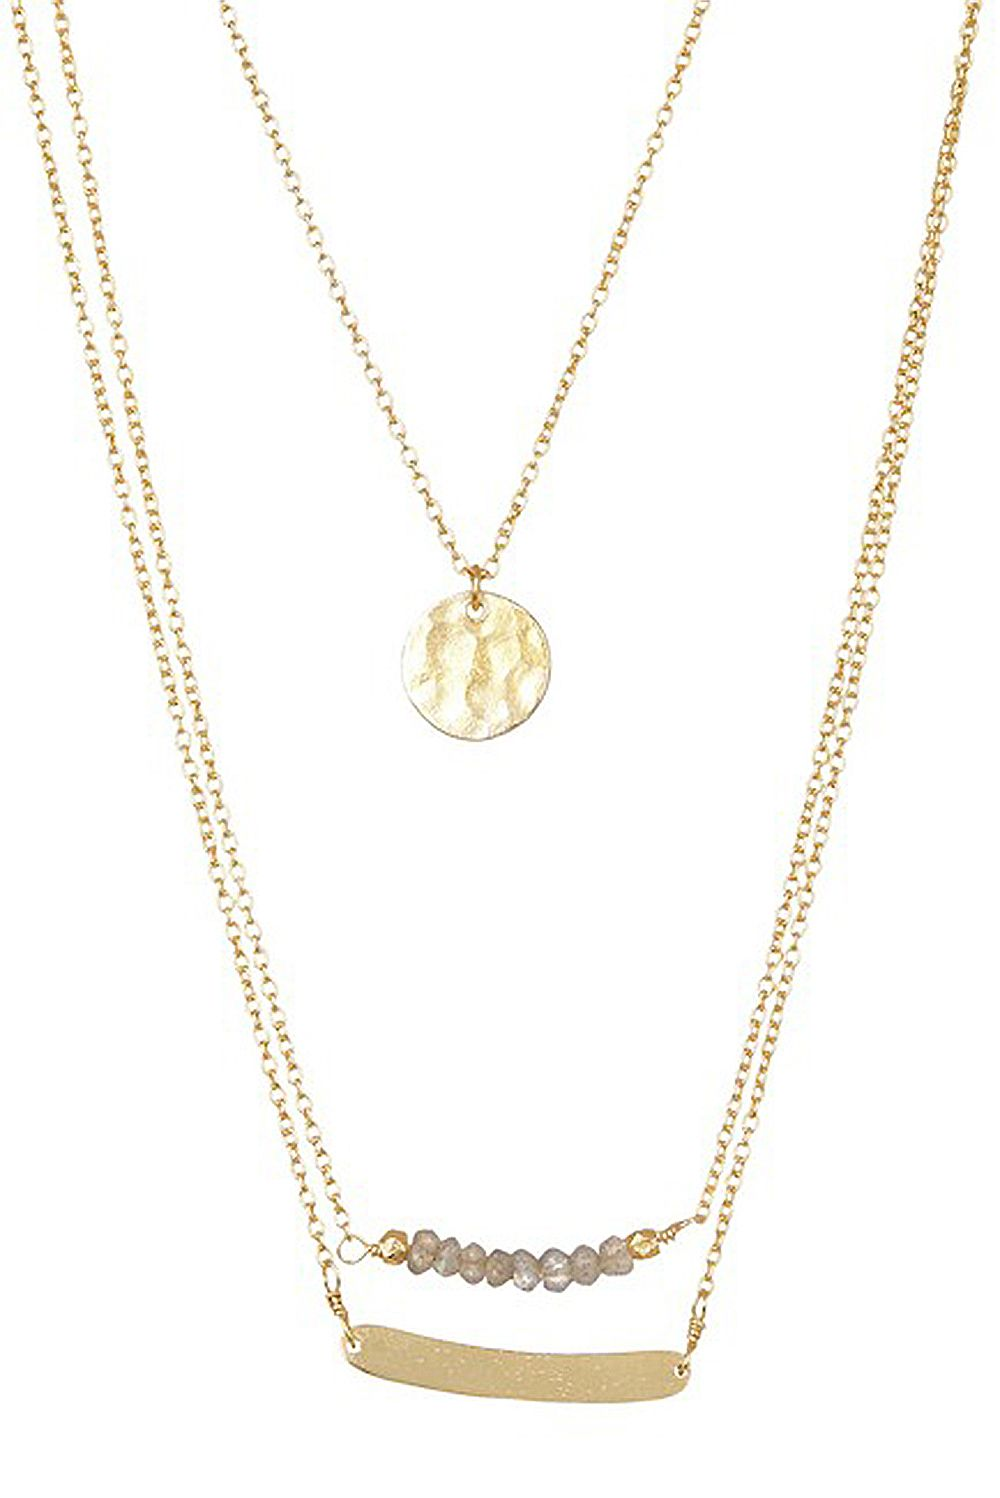 Paris Triple Strand Coin and Bar Necklace